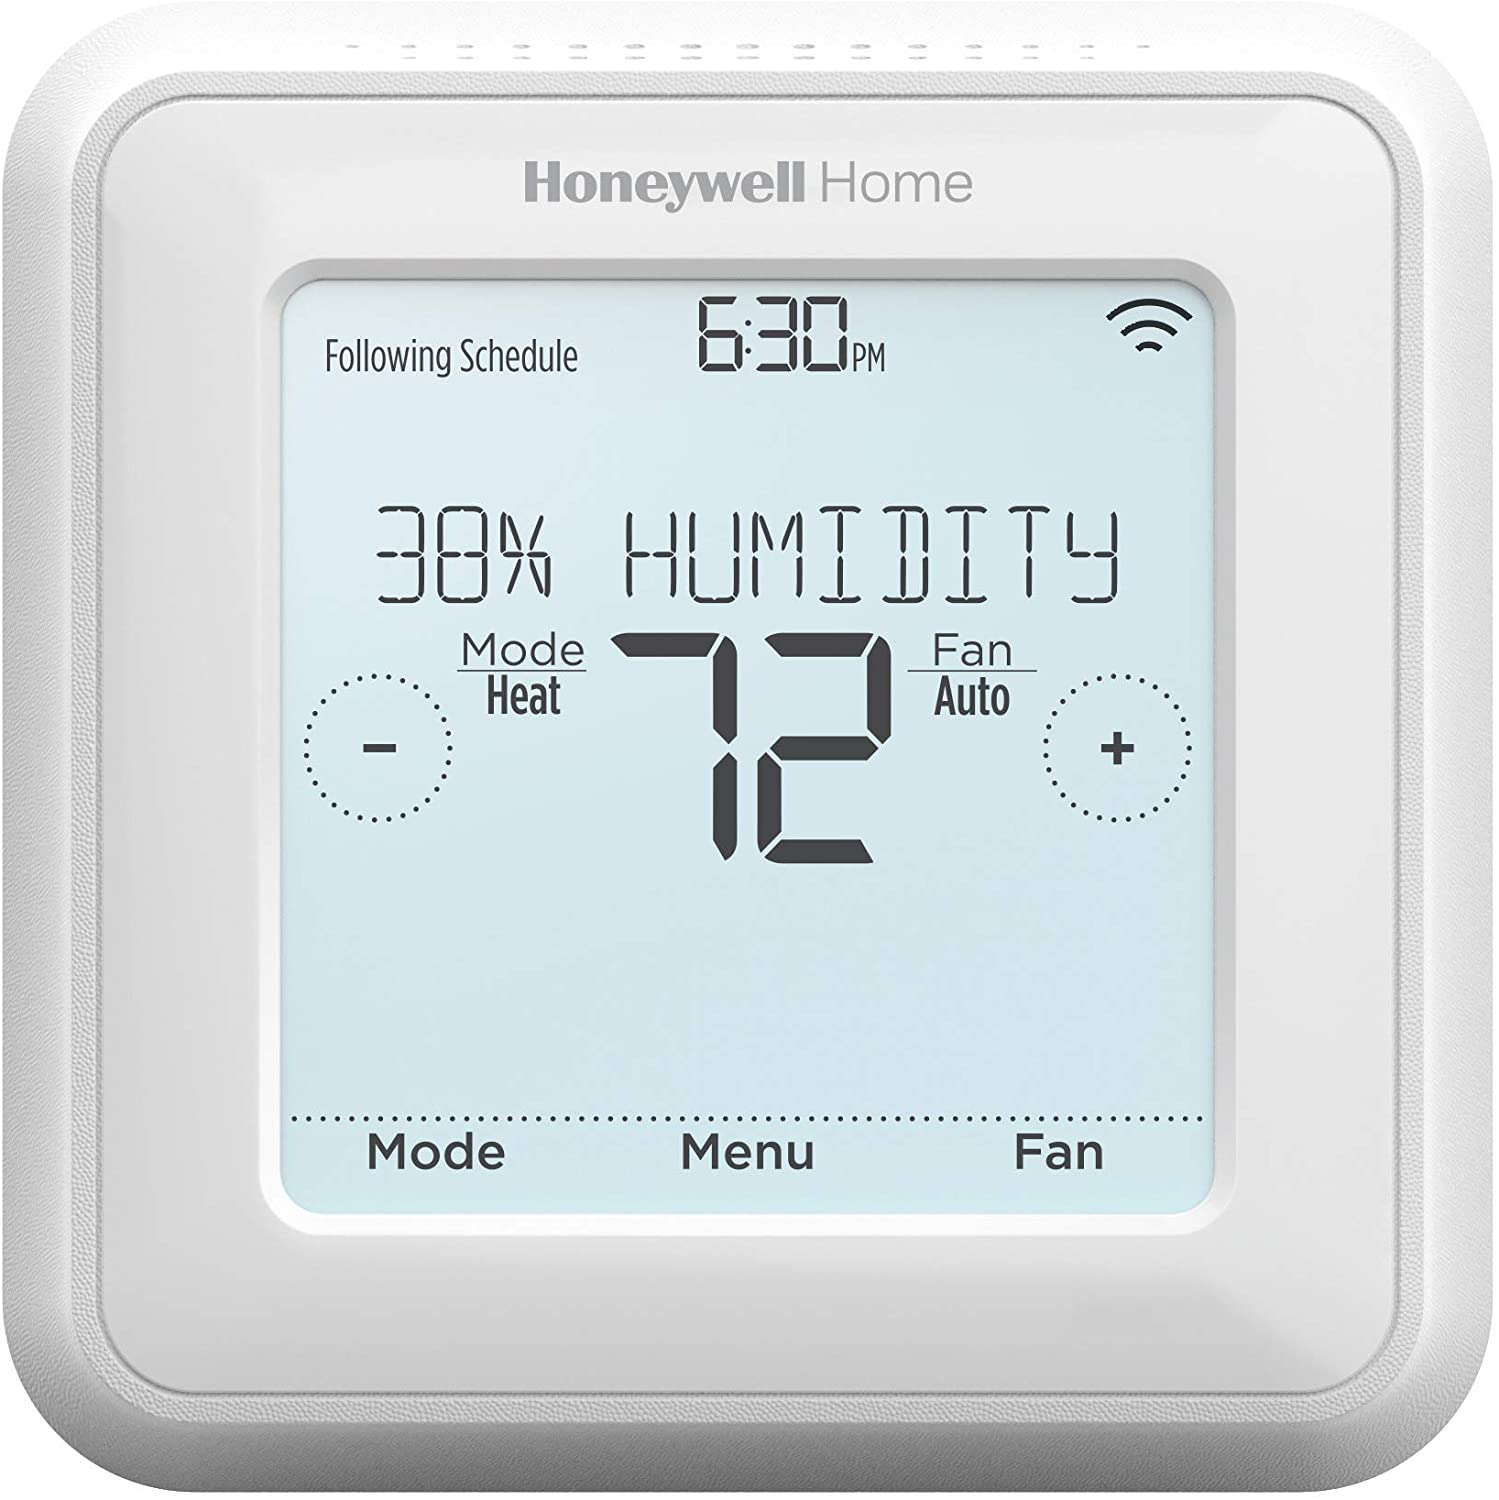 Honeywell Home RCHT8600ZW1003 Zwave Programmable T5 Z-Wave SEAL limited product 7-Day depot